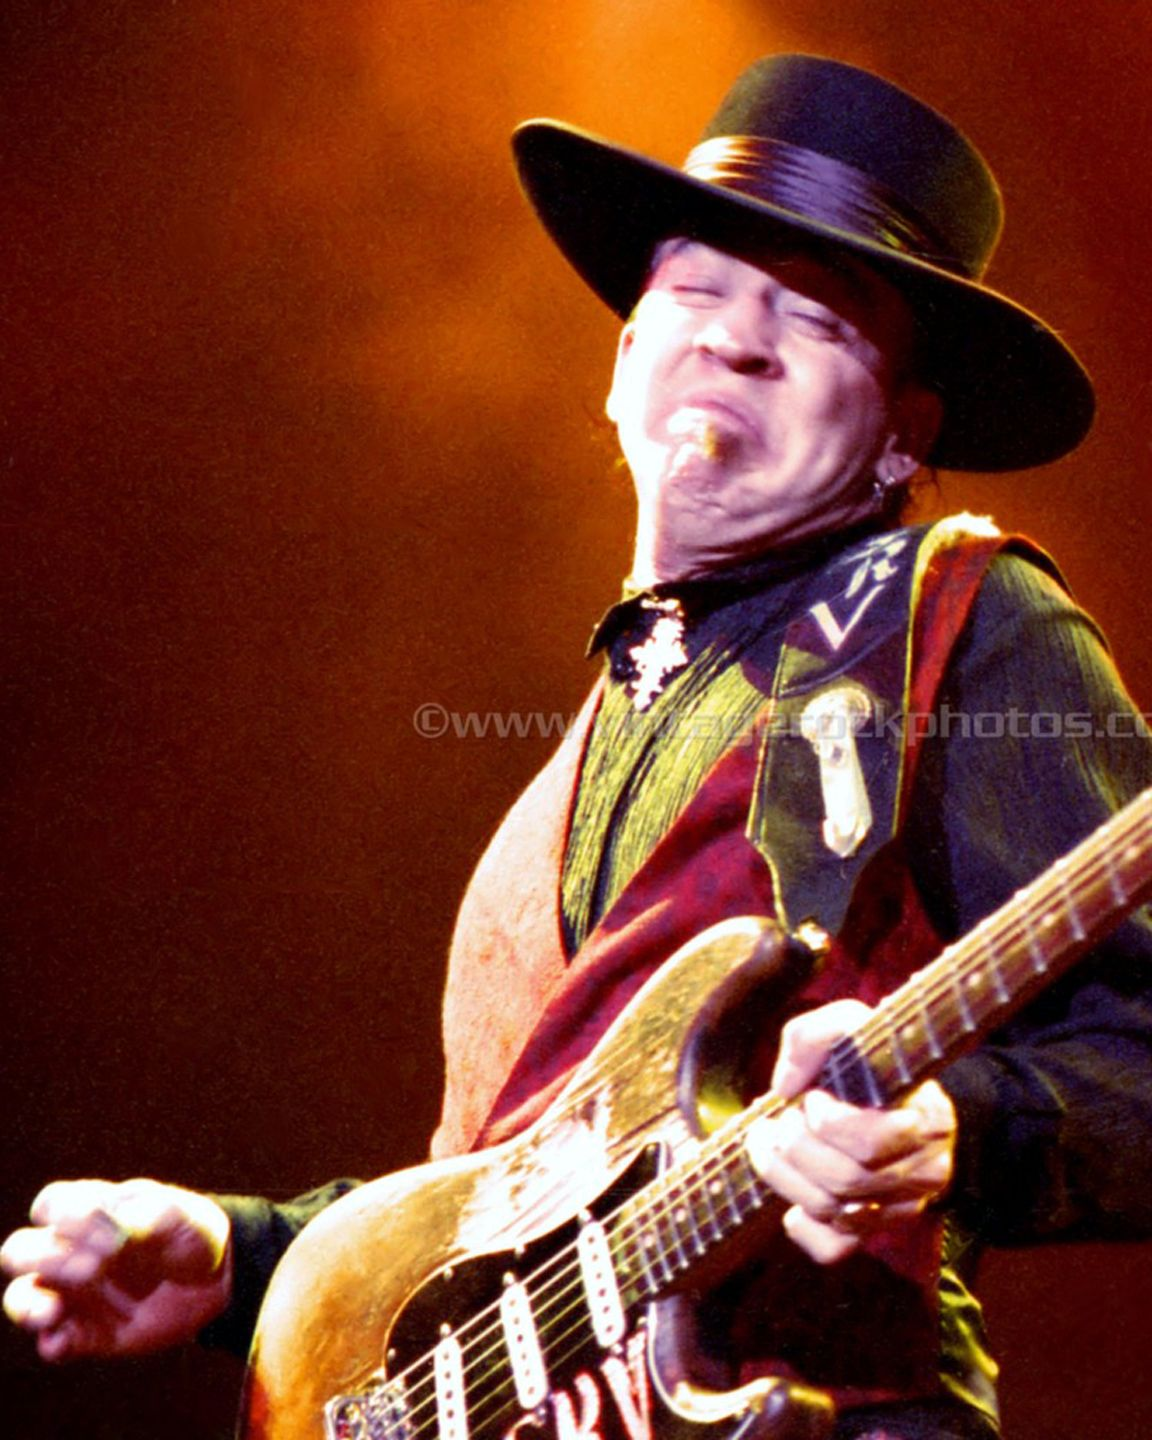 Photo of the King of all Blues artists, Stevie Ray Vaughn